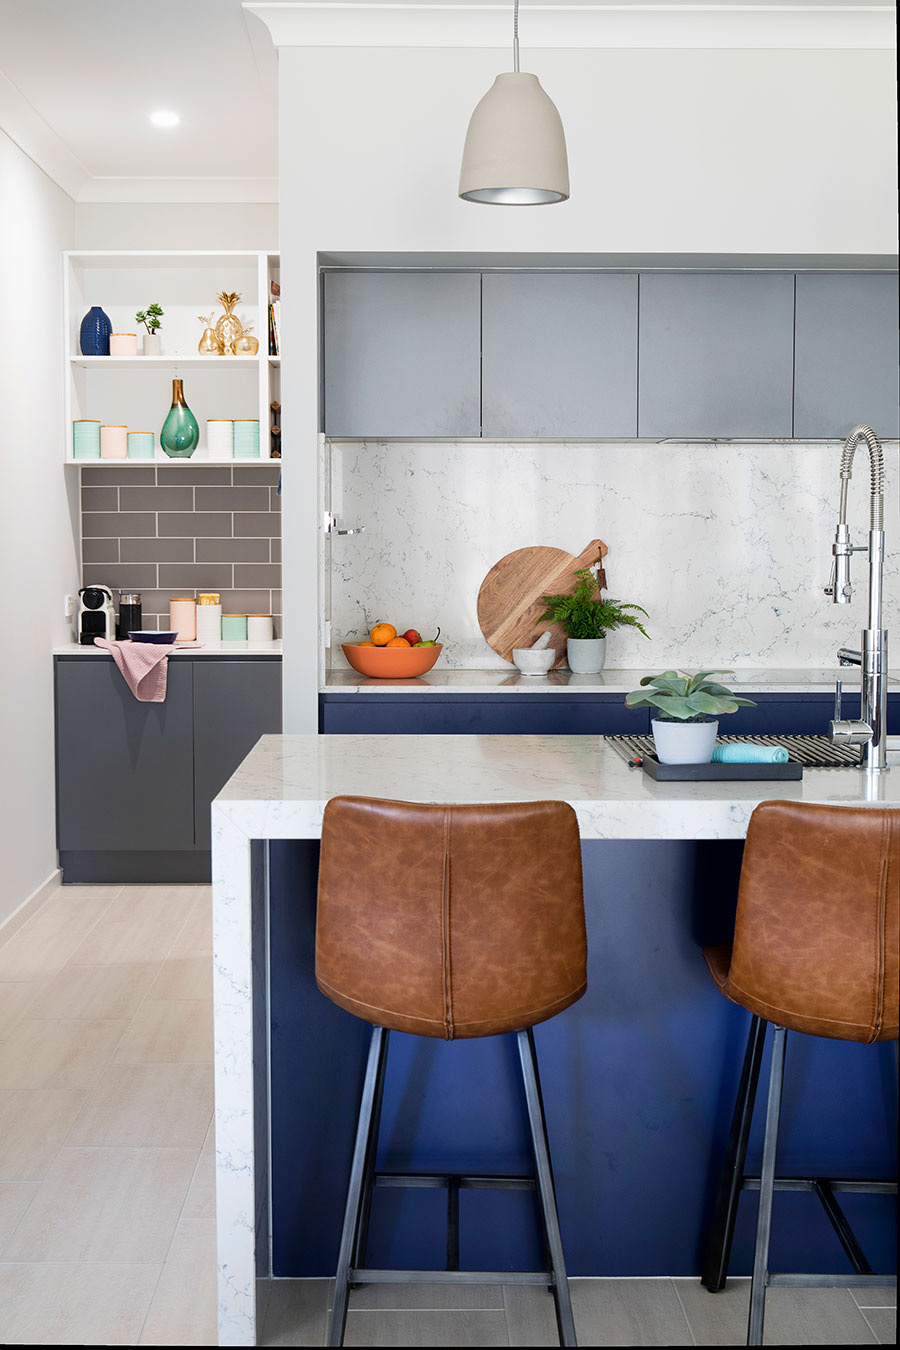 https://www.ivyandfinch.com.au/wp-content/uploads/2021/01/Interior-Design-Redland-Bay-Kitchen-Design.jpg